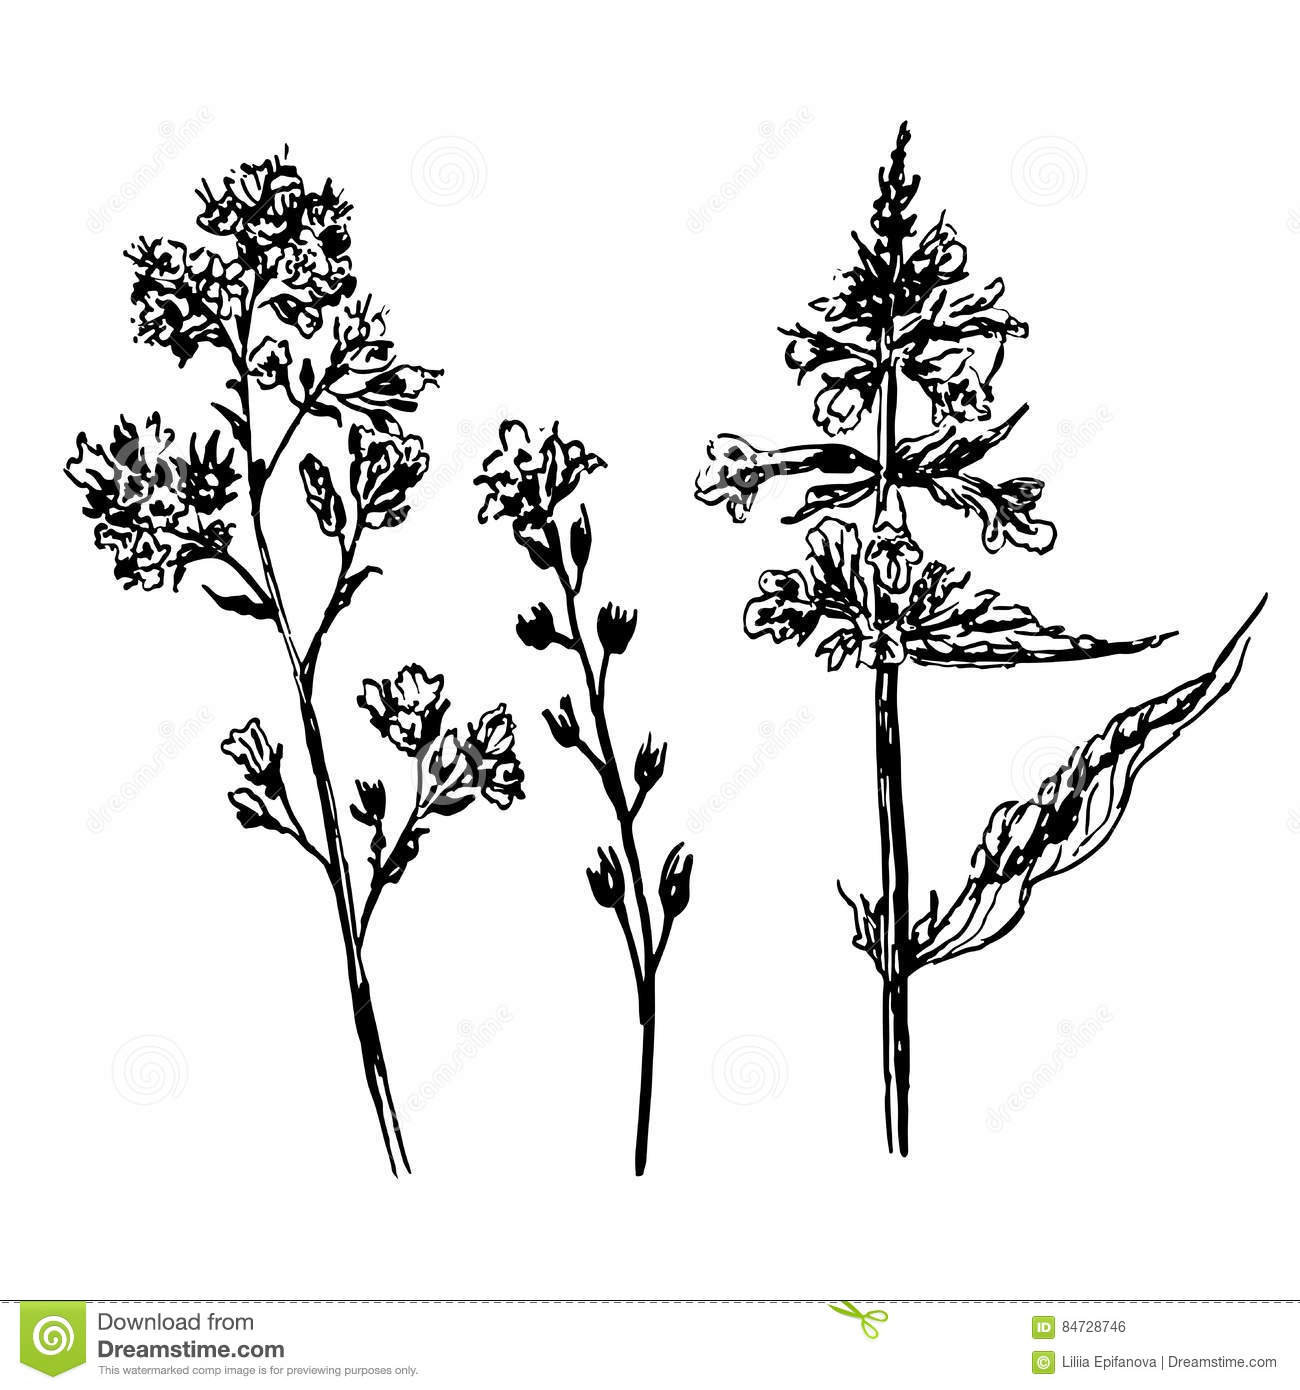 Drawing Of Clover Flowers Royalty Free Stock Image